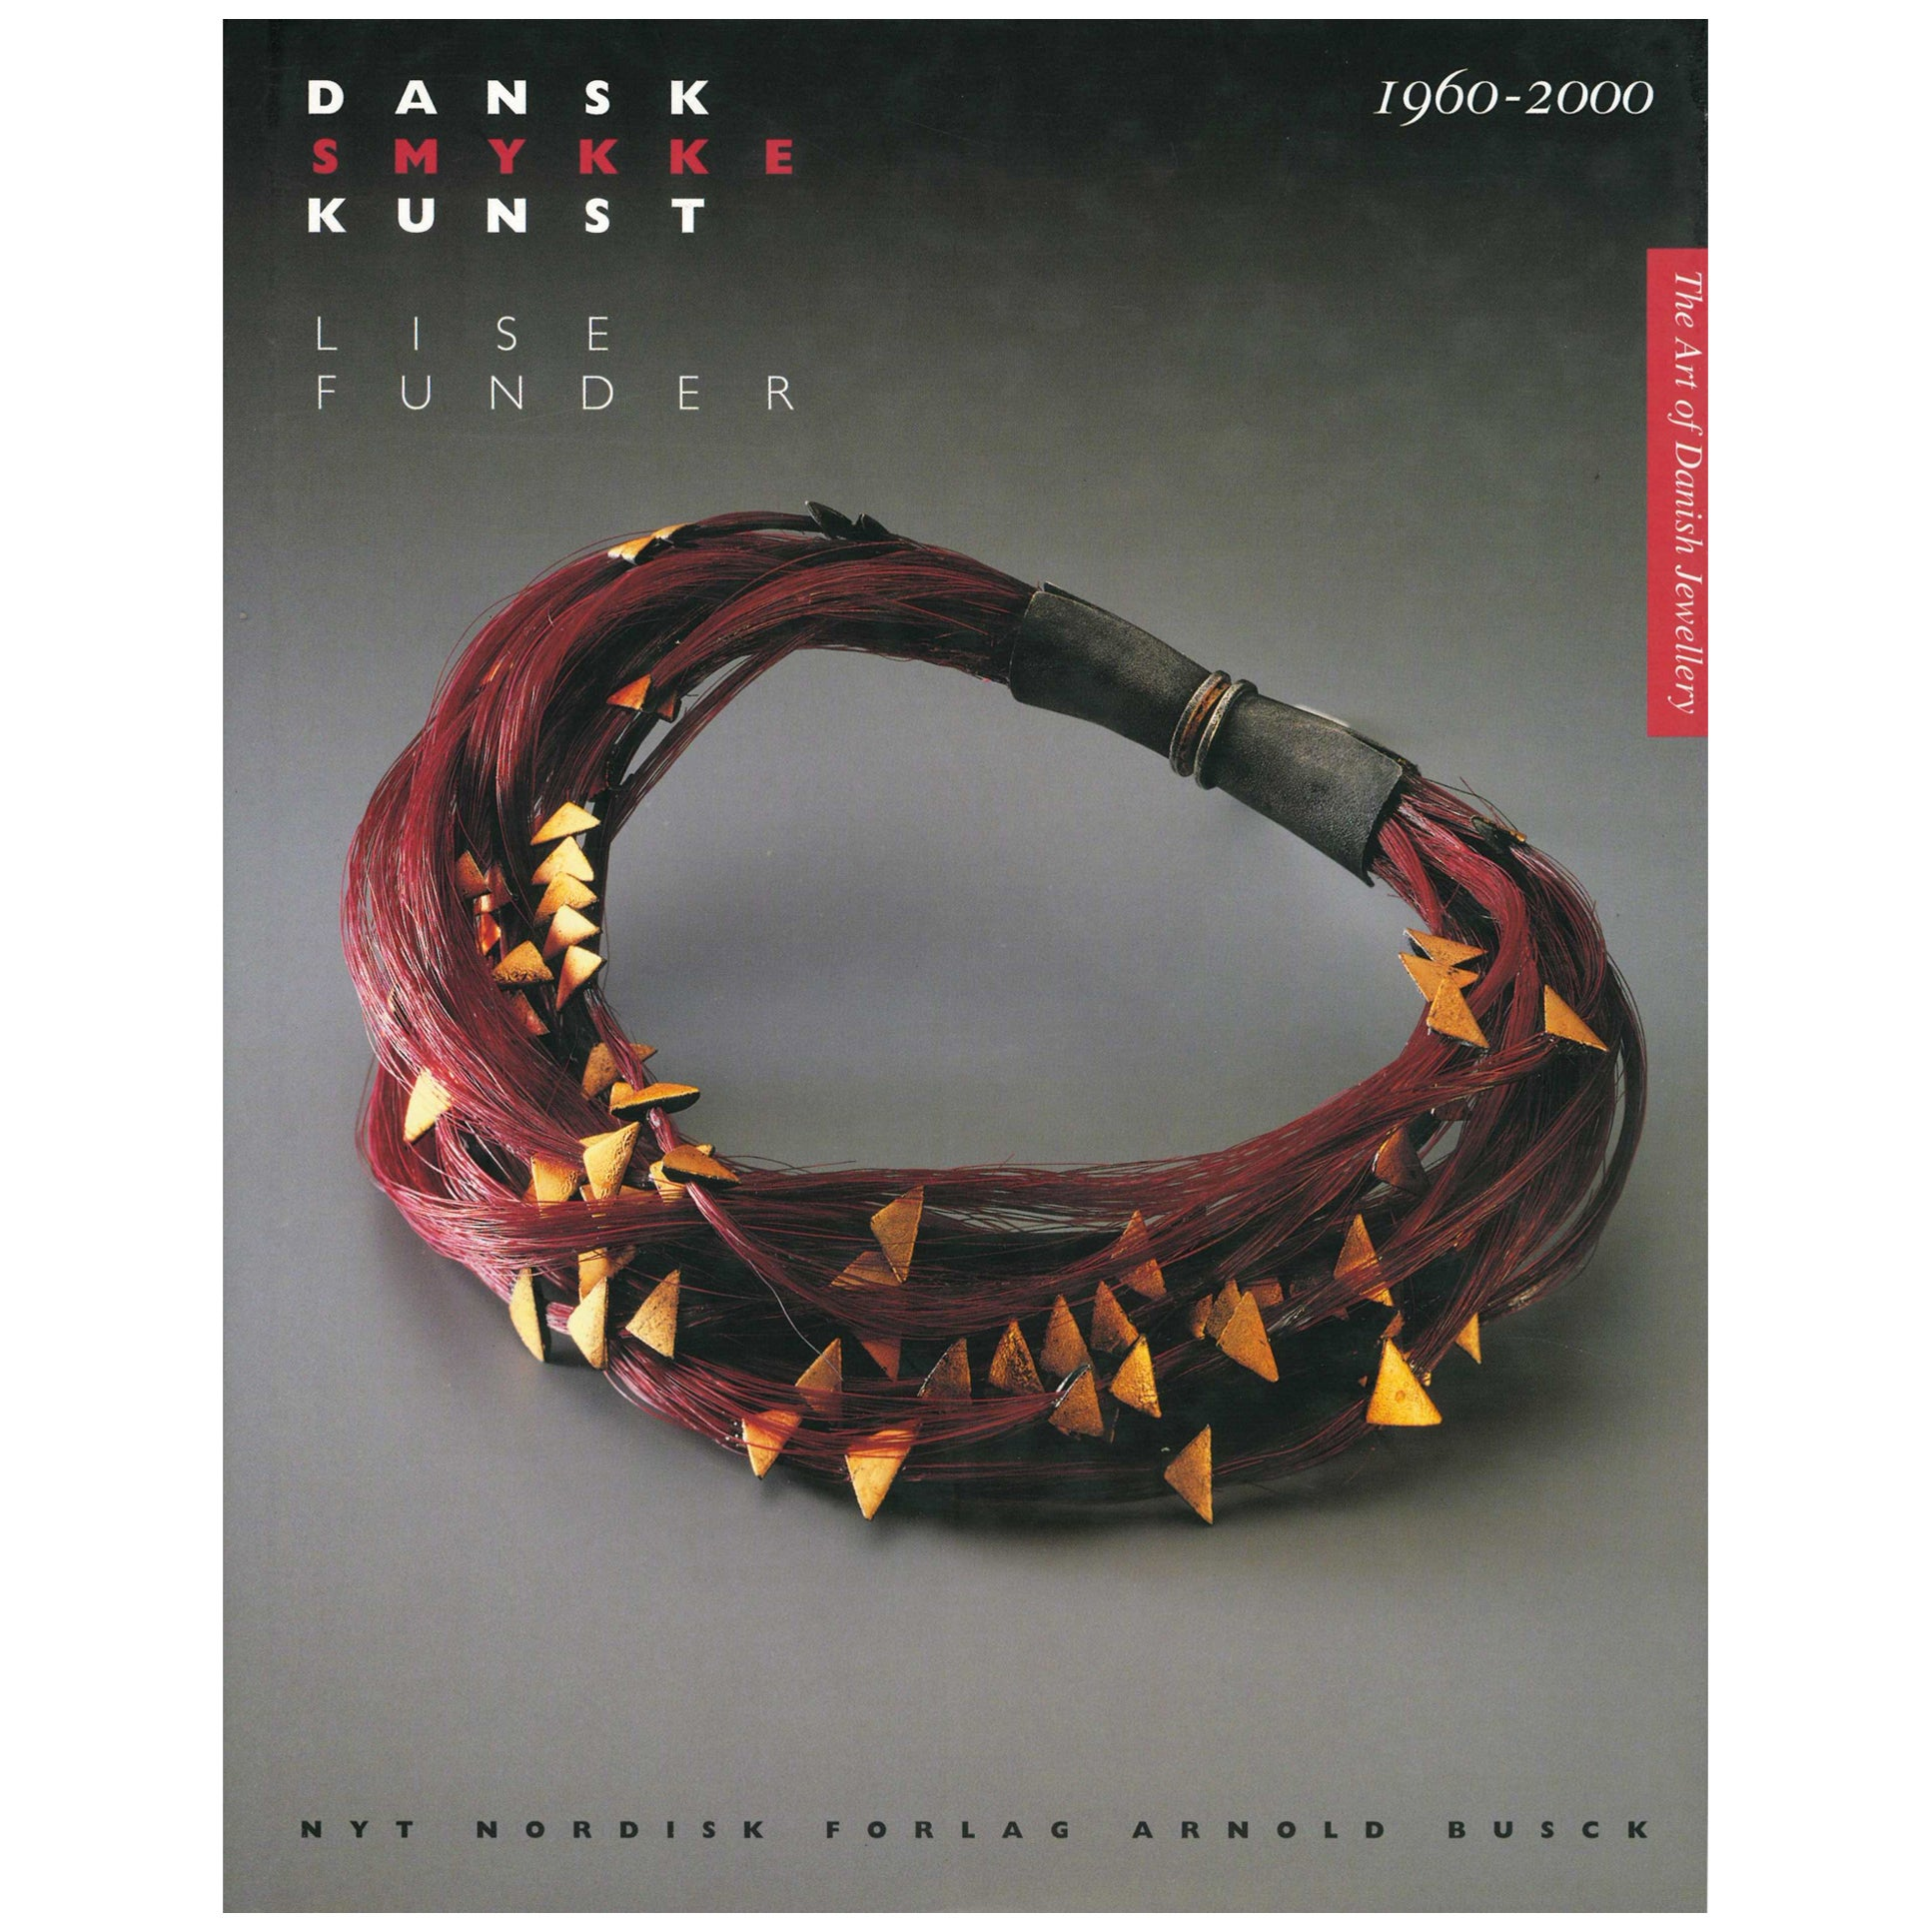 THE ART OF DANISH JEWELLERY, 1960-2000 'Book'